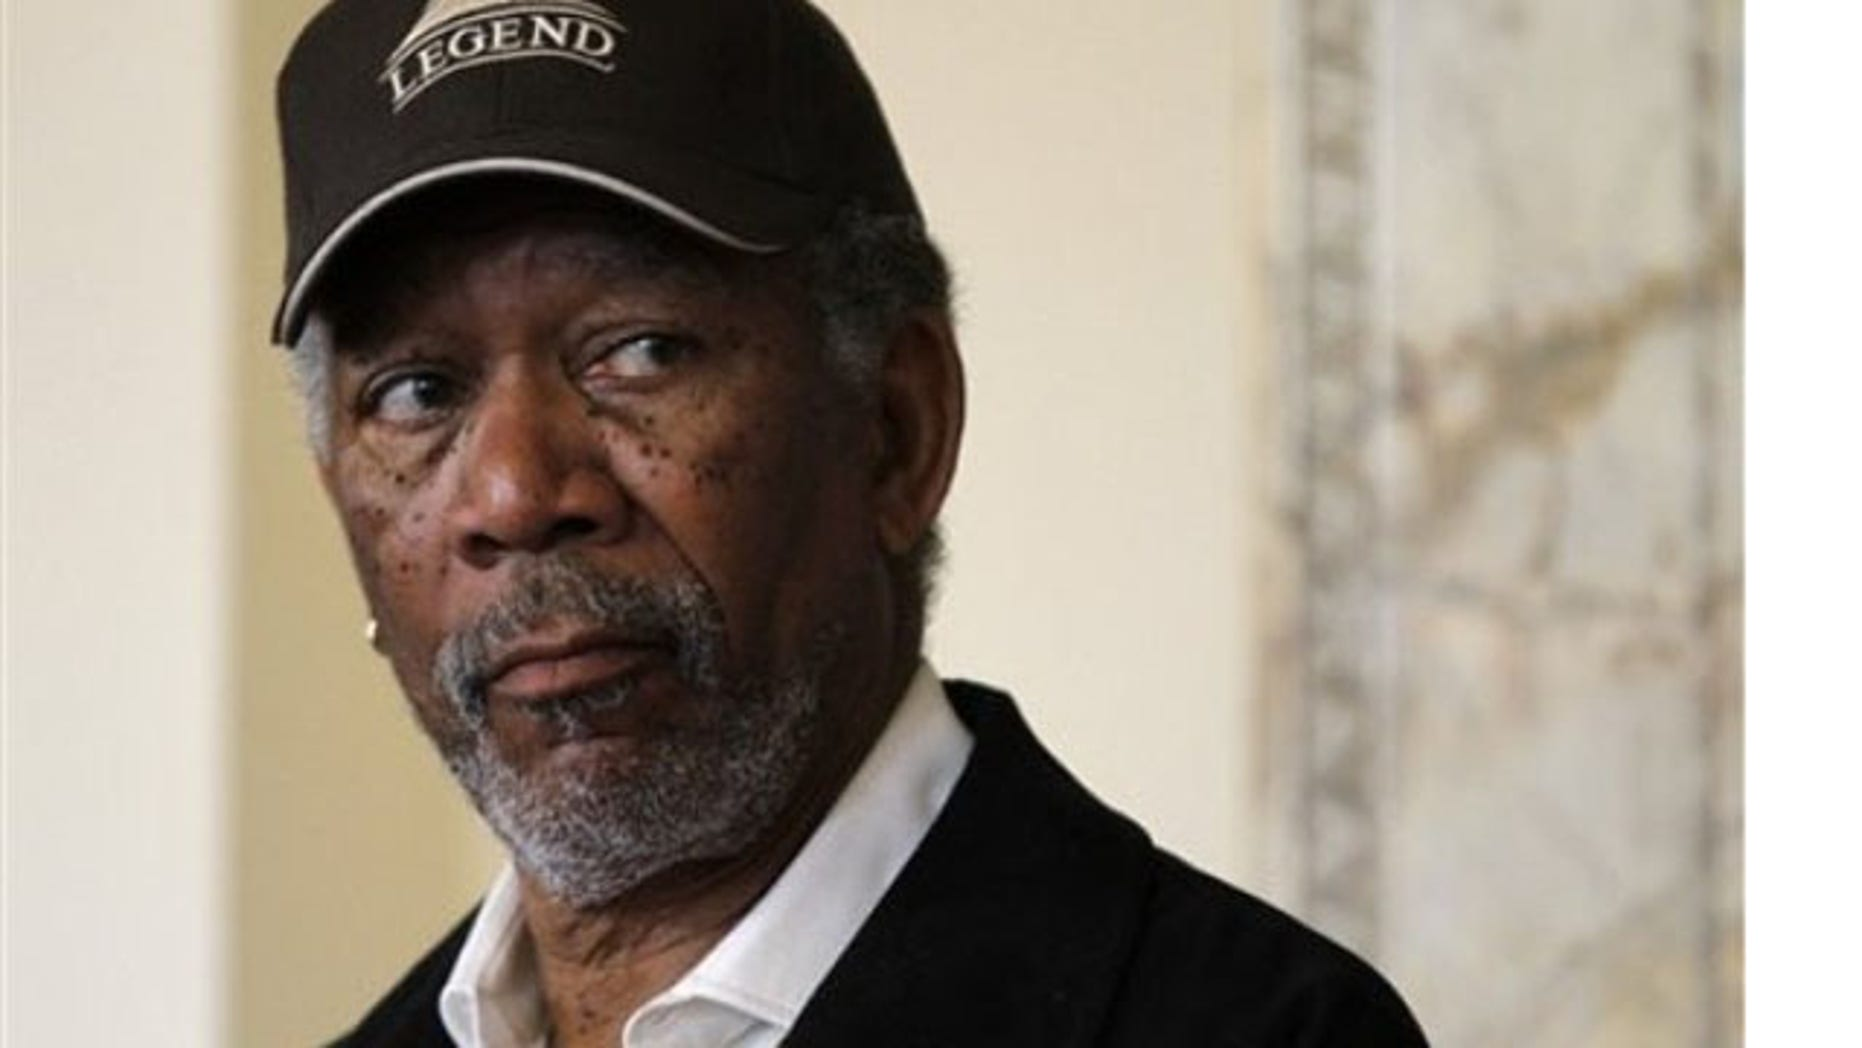 Actor Morgan Freeman listens during a news conference at Symphony Hall, in Boston, Tuesday, May 18, 2010.